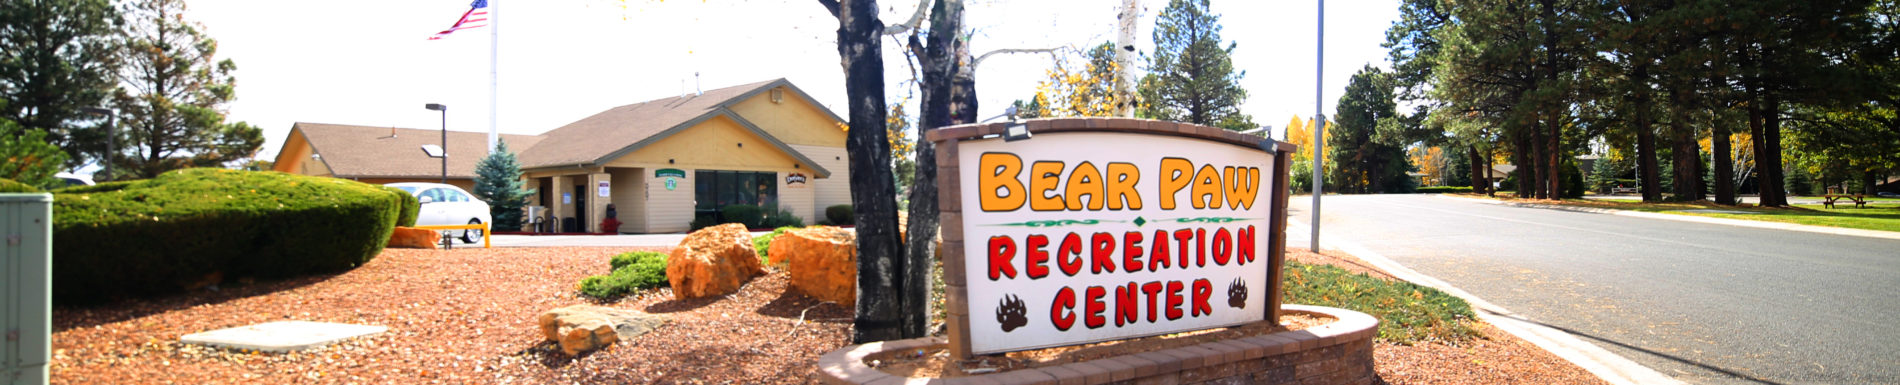 Bear Paw Clubhouse - We have lots of fun activities and things to do.